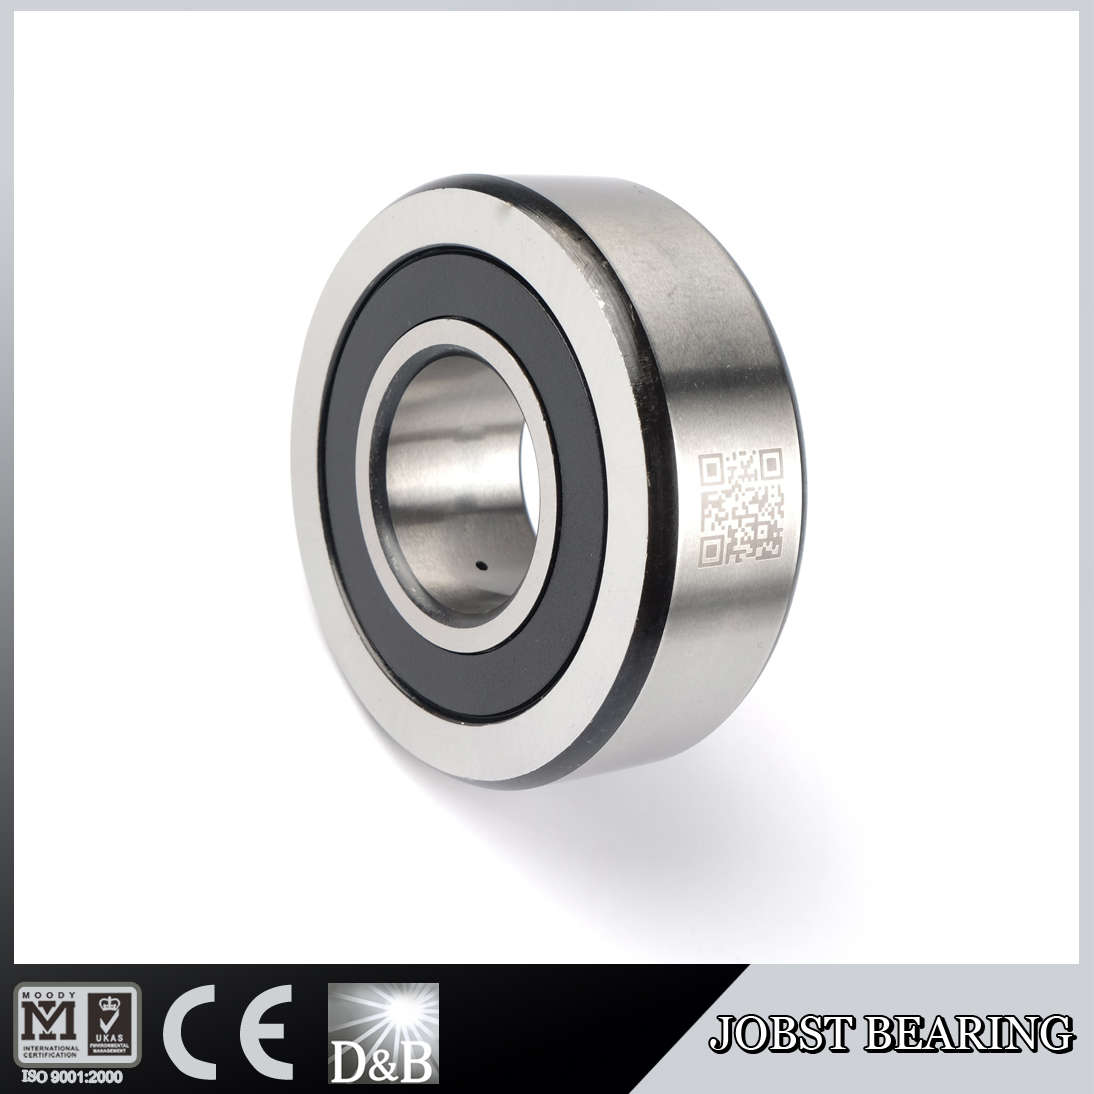 Fag Bearing products from China (Mainland),buy Fag Bearing from…